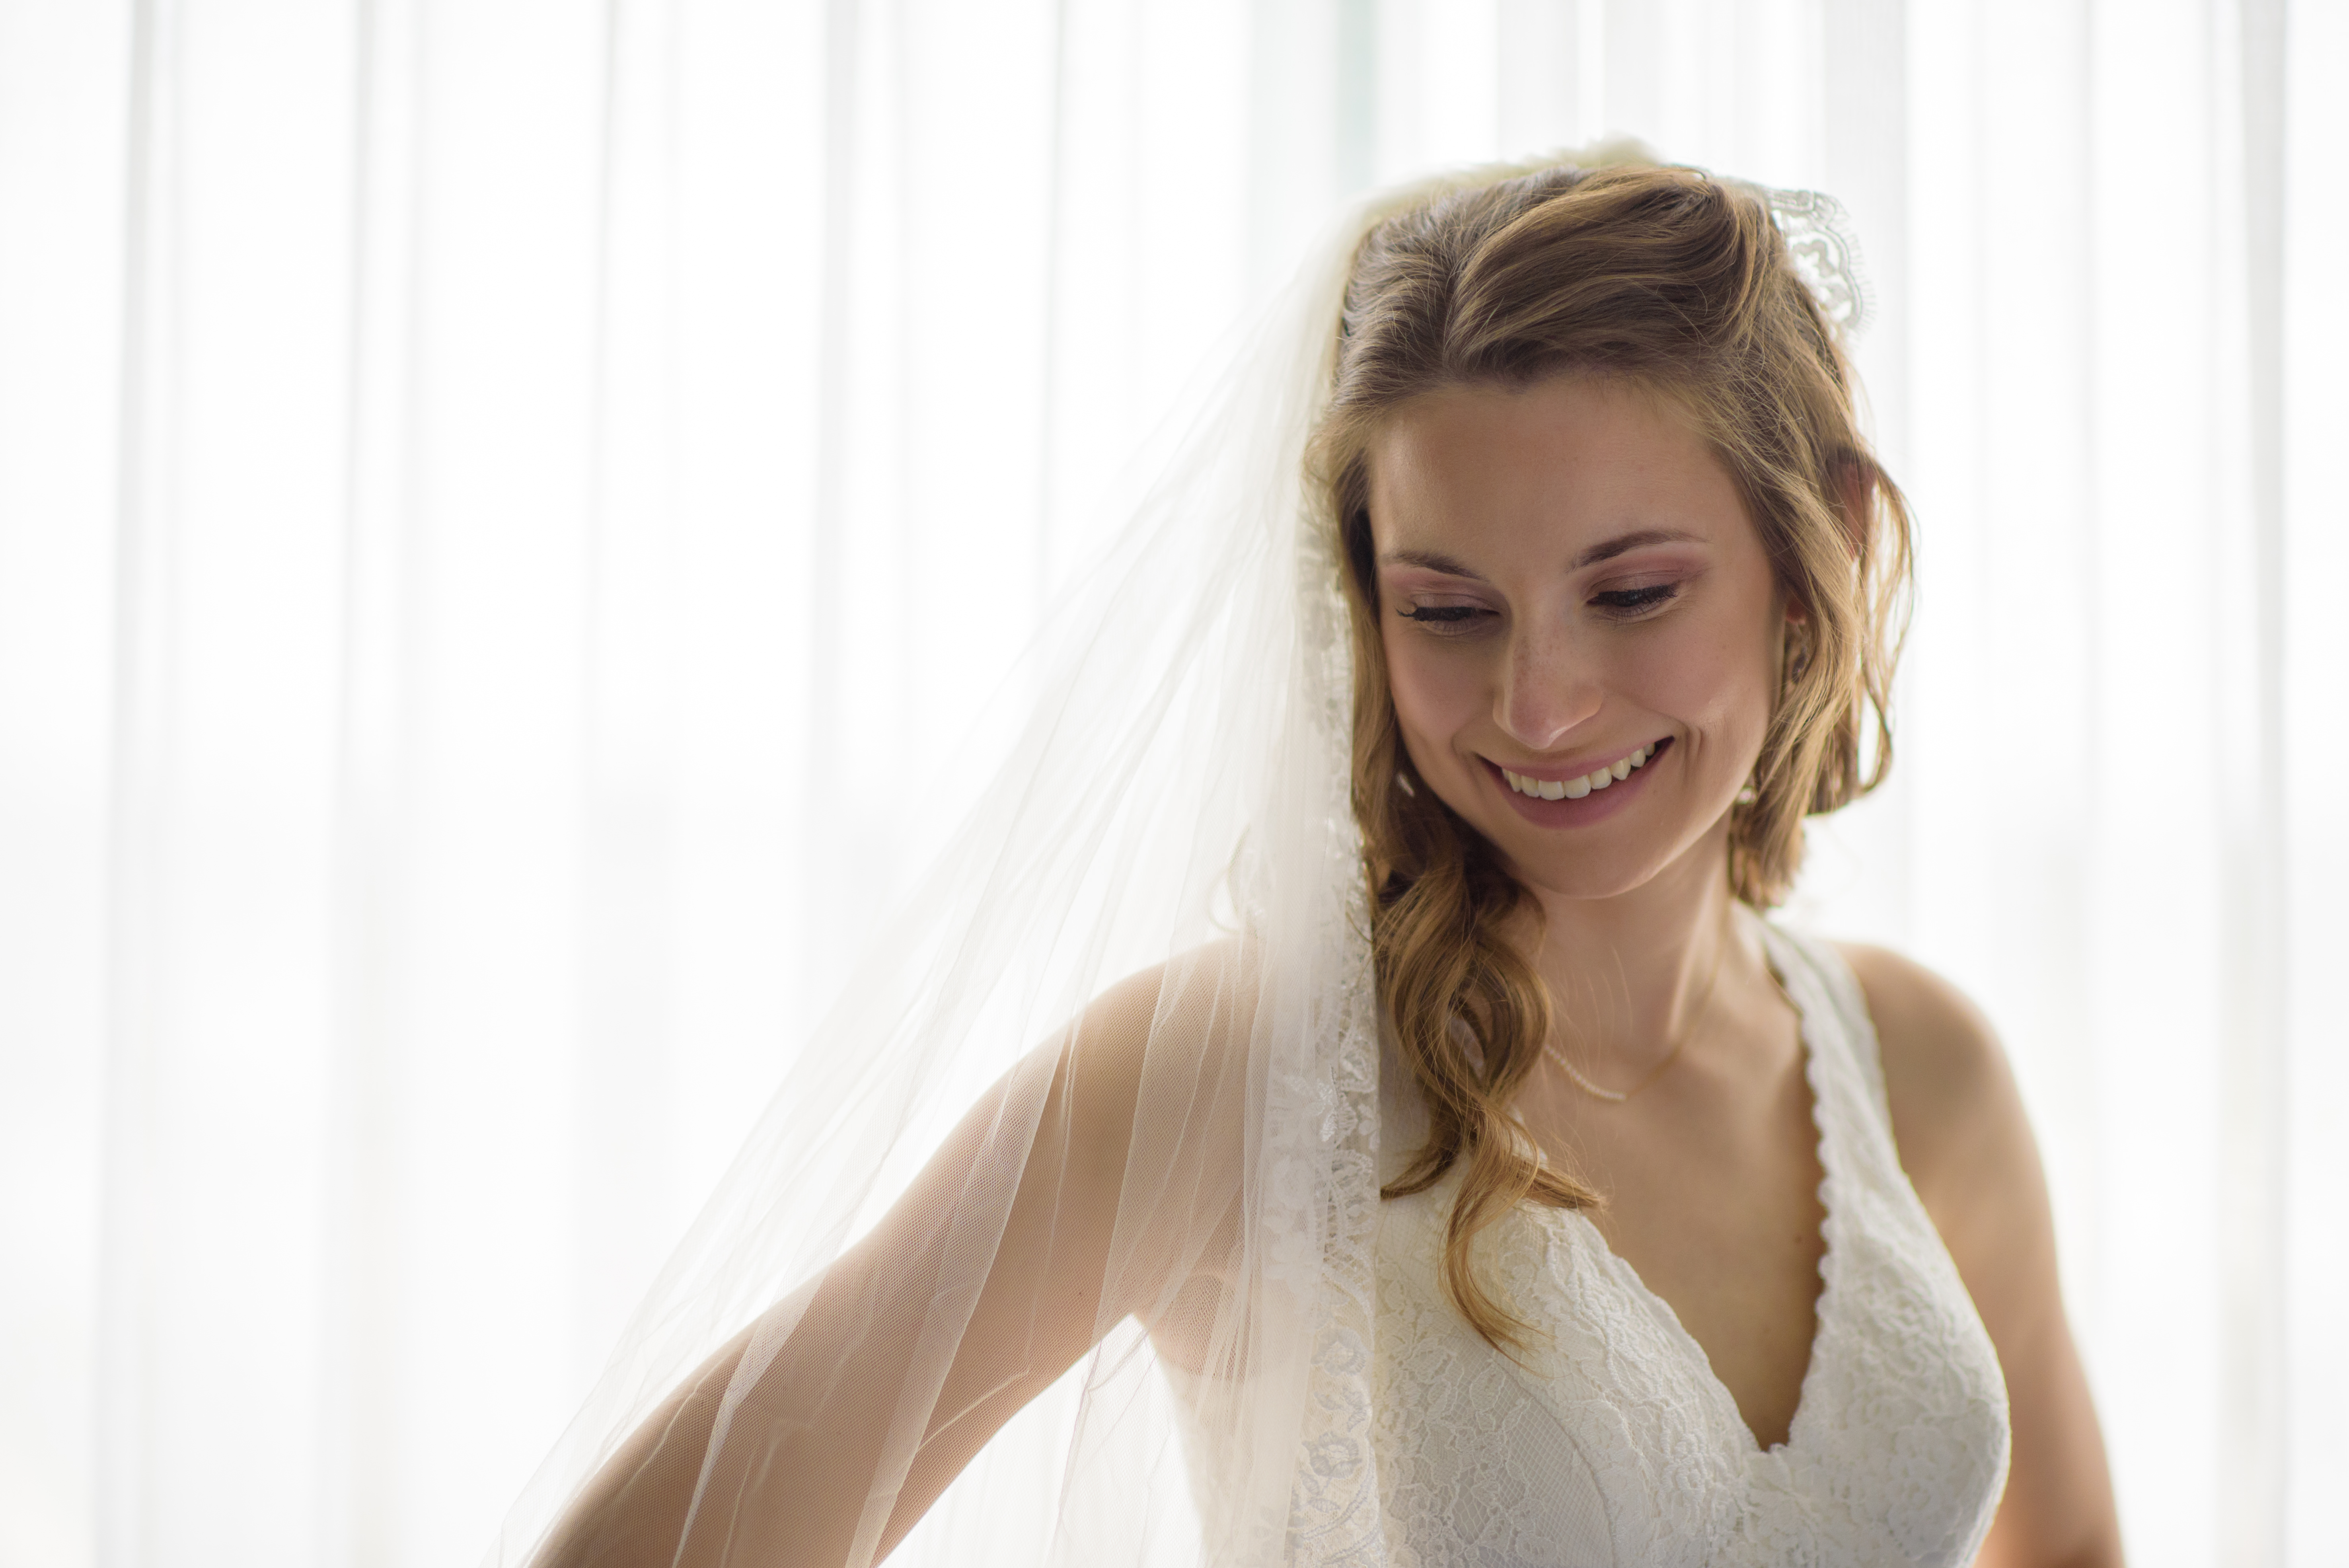 Embassy Suites Lombard Bride Smile